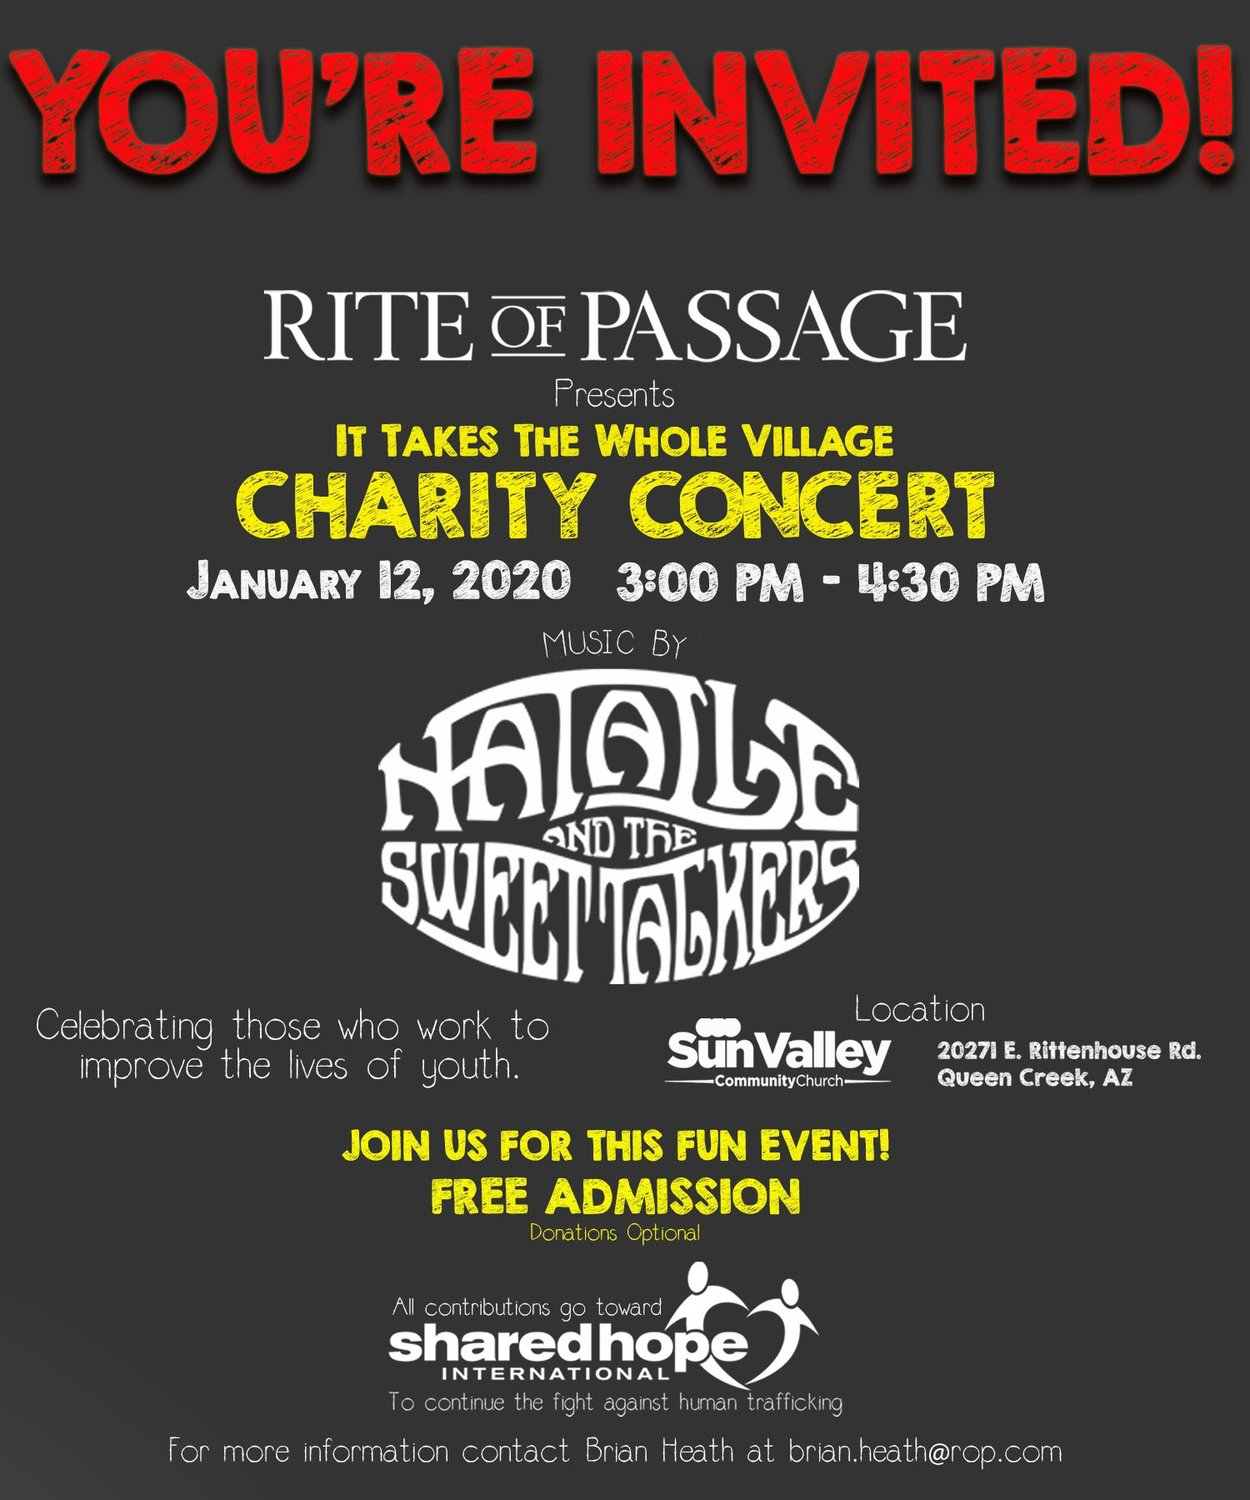 A flyer about the charity concert.